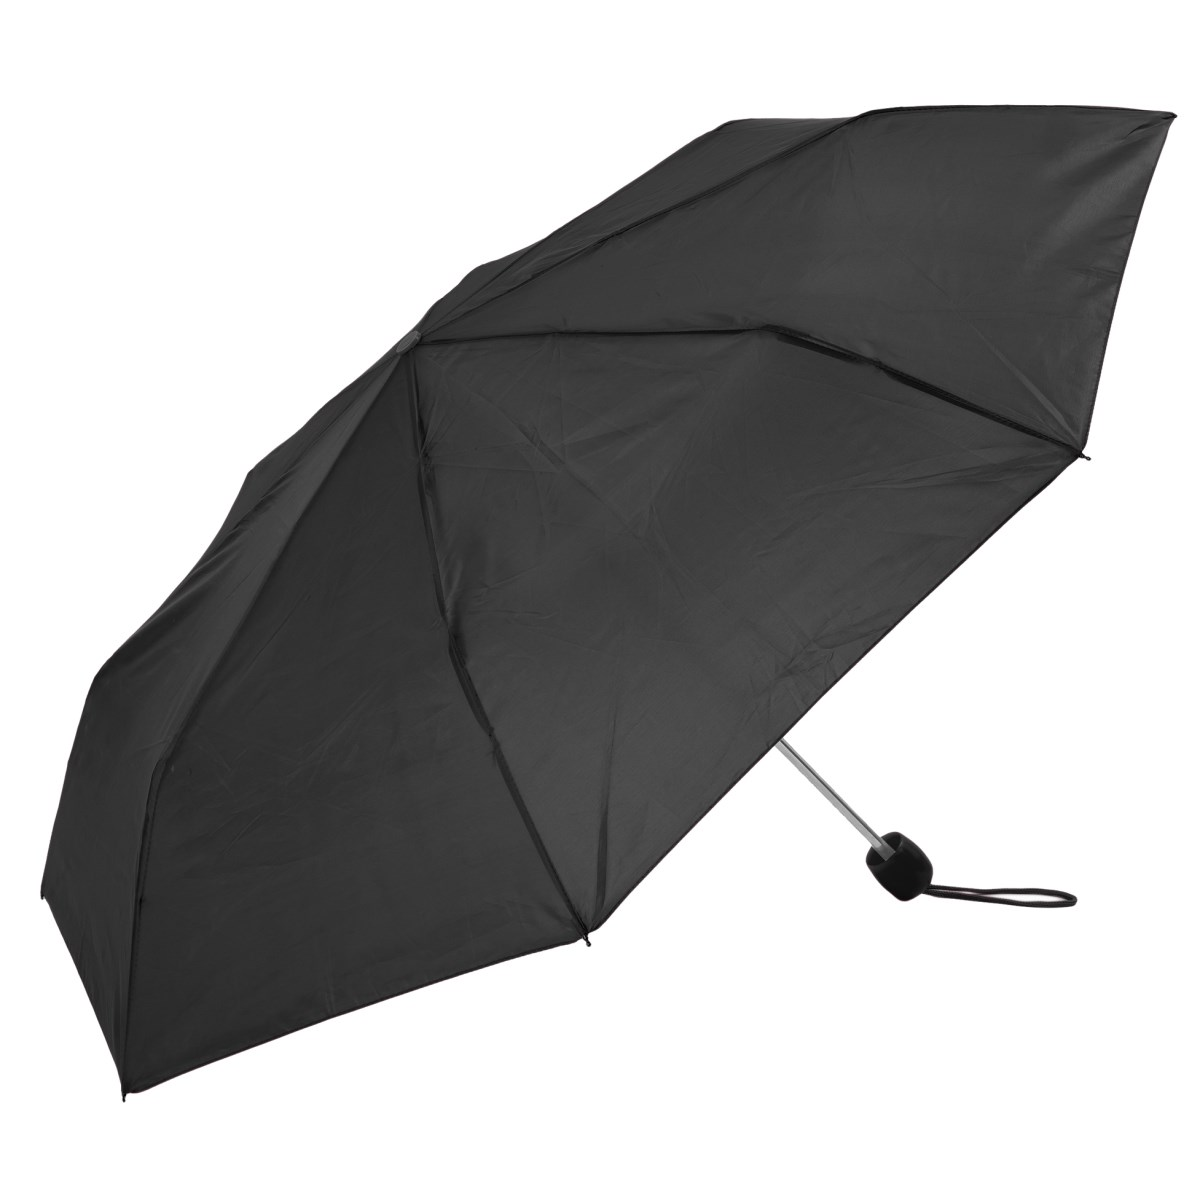 Unisex Black Compact Umbrella (3401B)